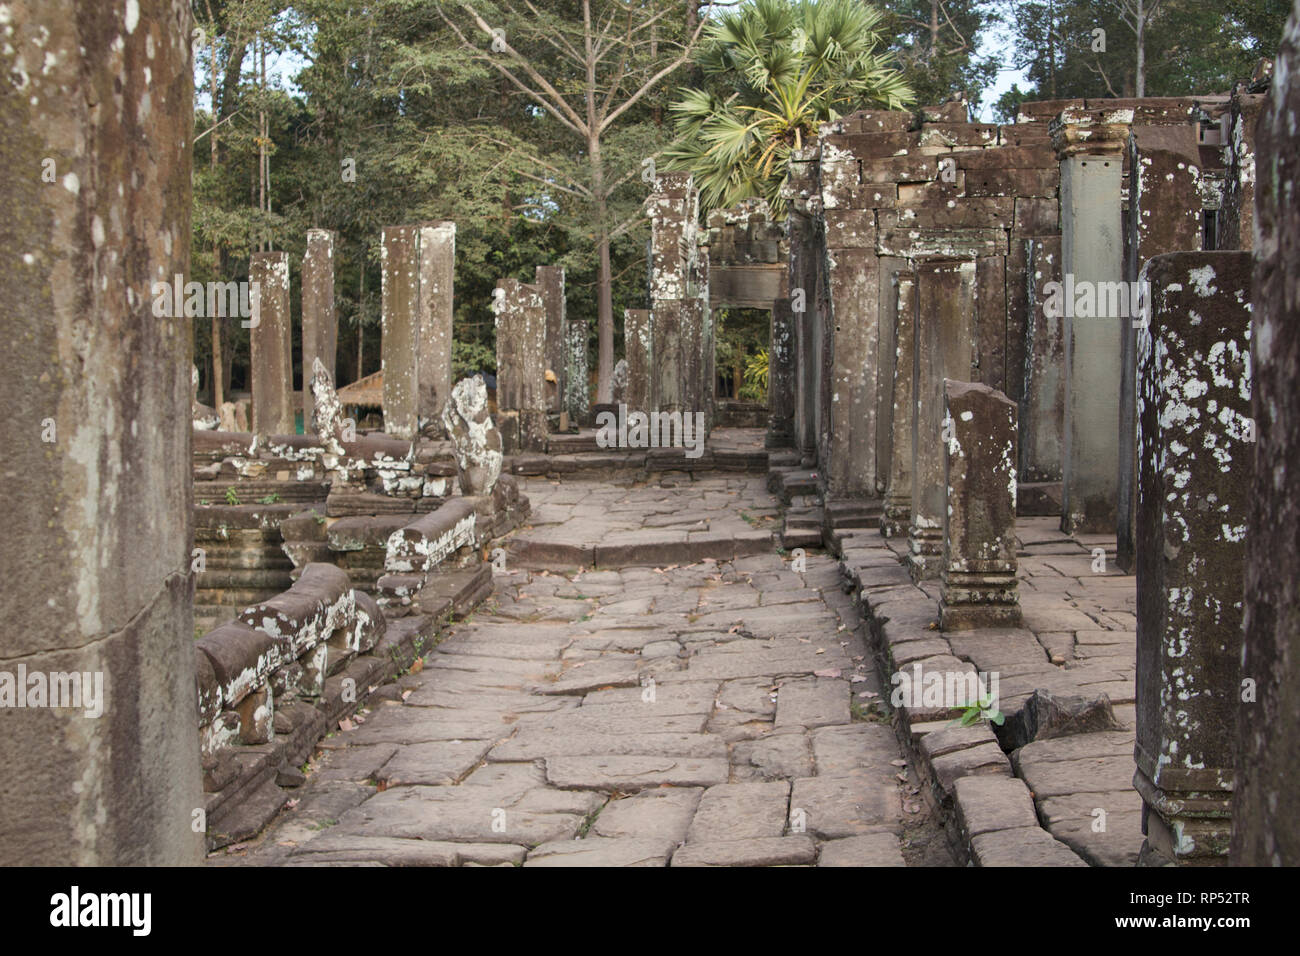 Siem Reap-Bayon Temple path surrounded by colums - Stock Image